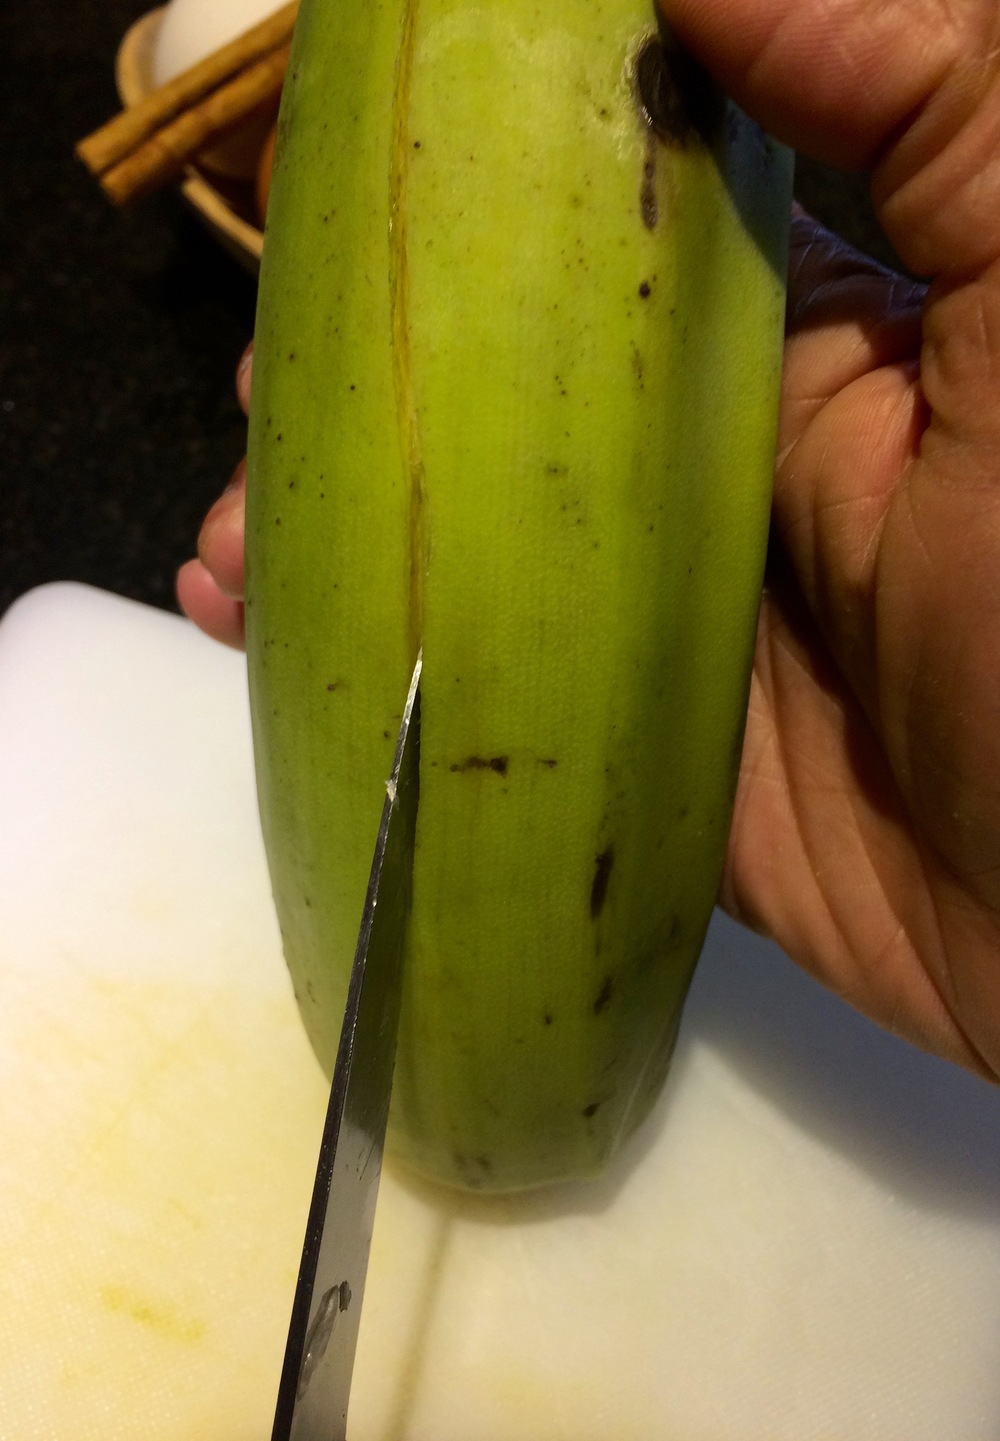 Vertically cutting the green plantain